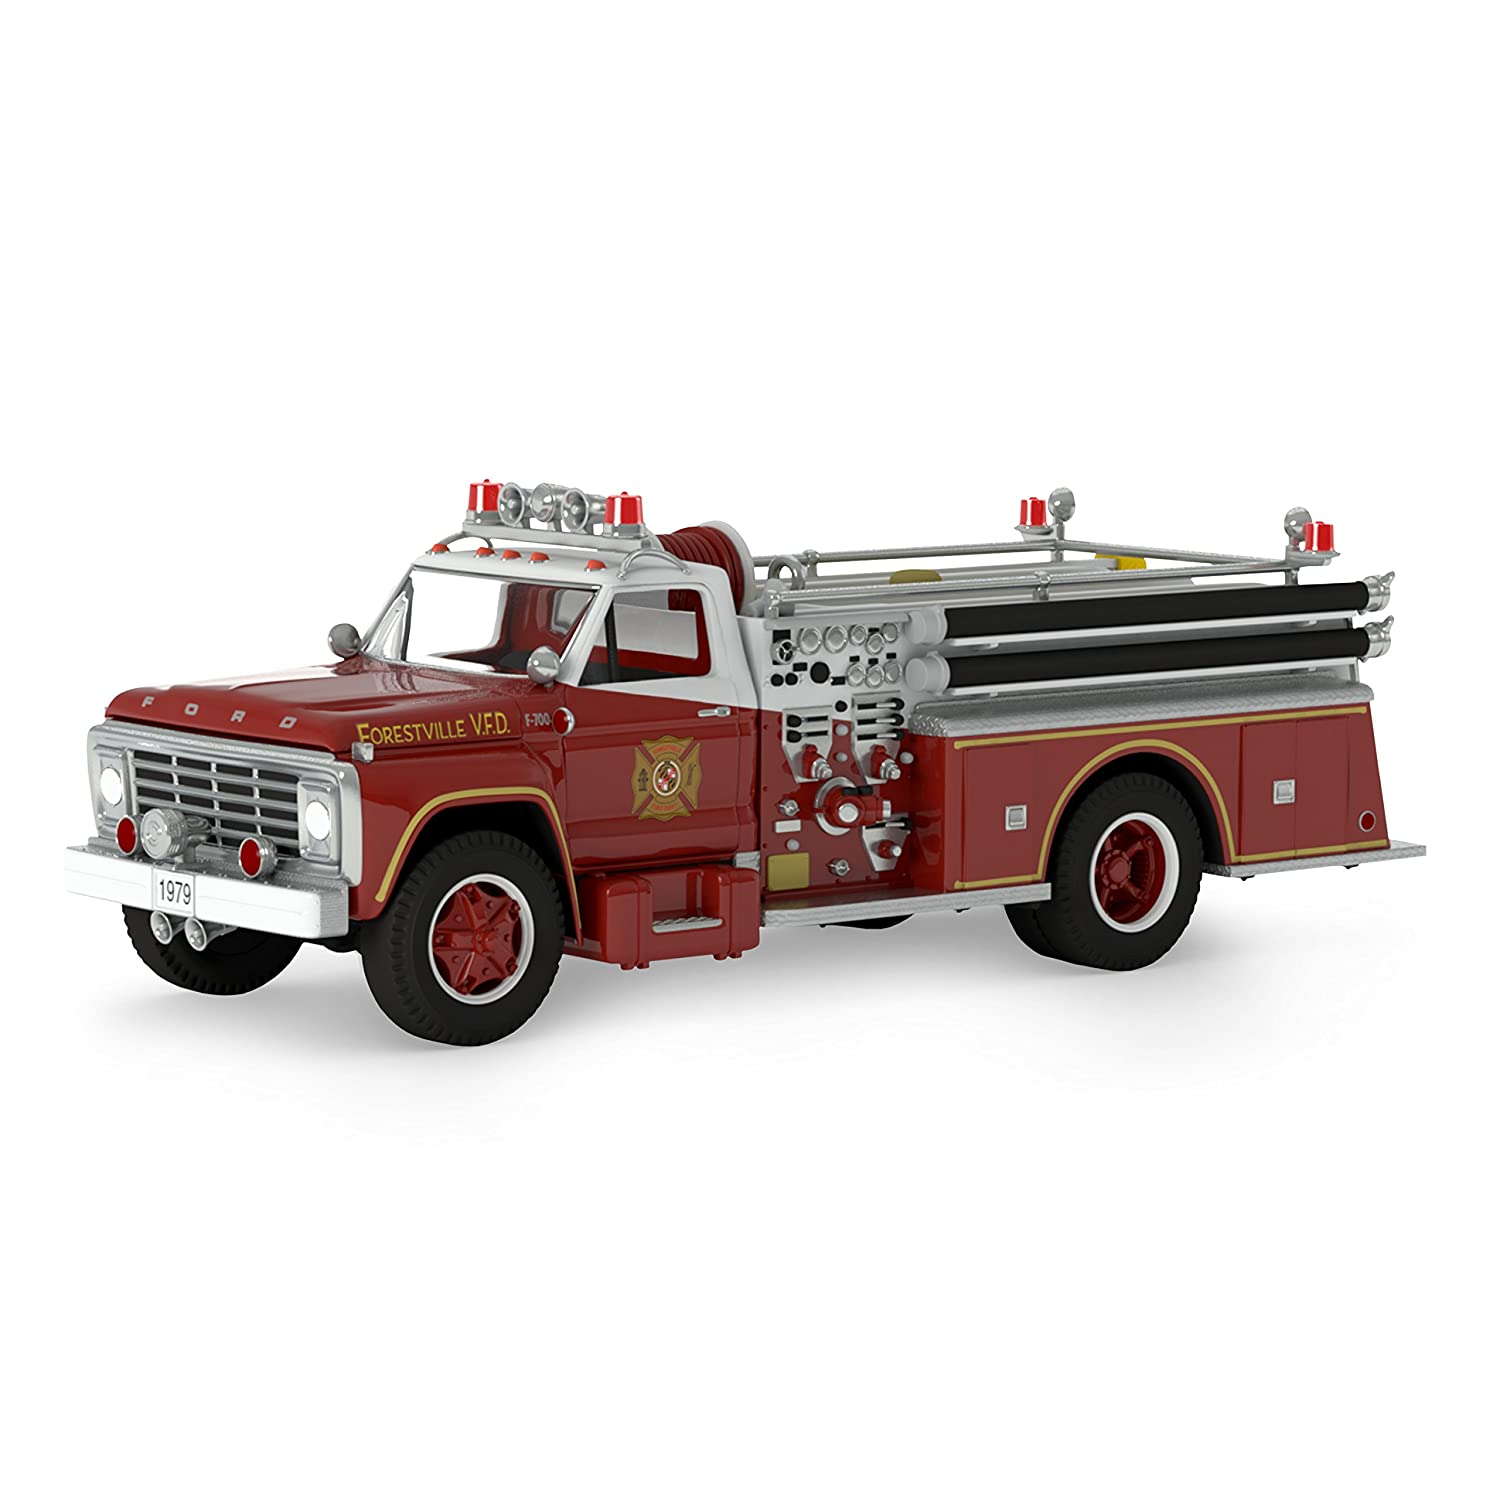 2017 Hallmark Keepsake Fire Truck Dated Christmas Ornament With Light